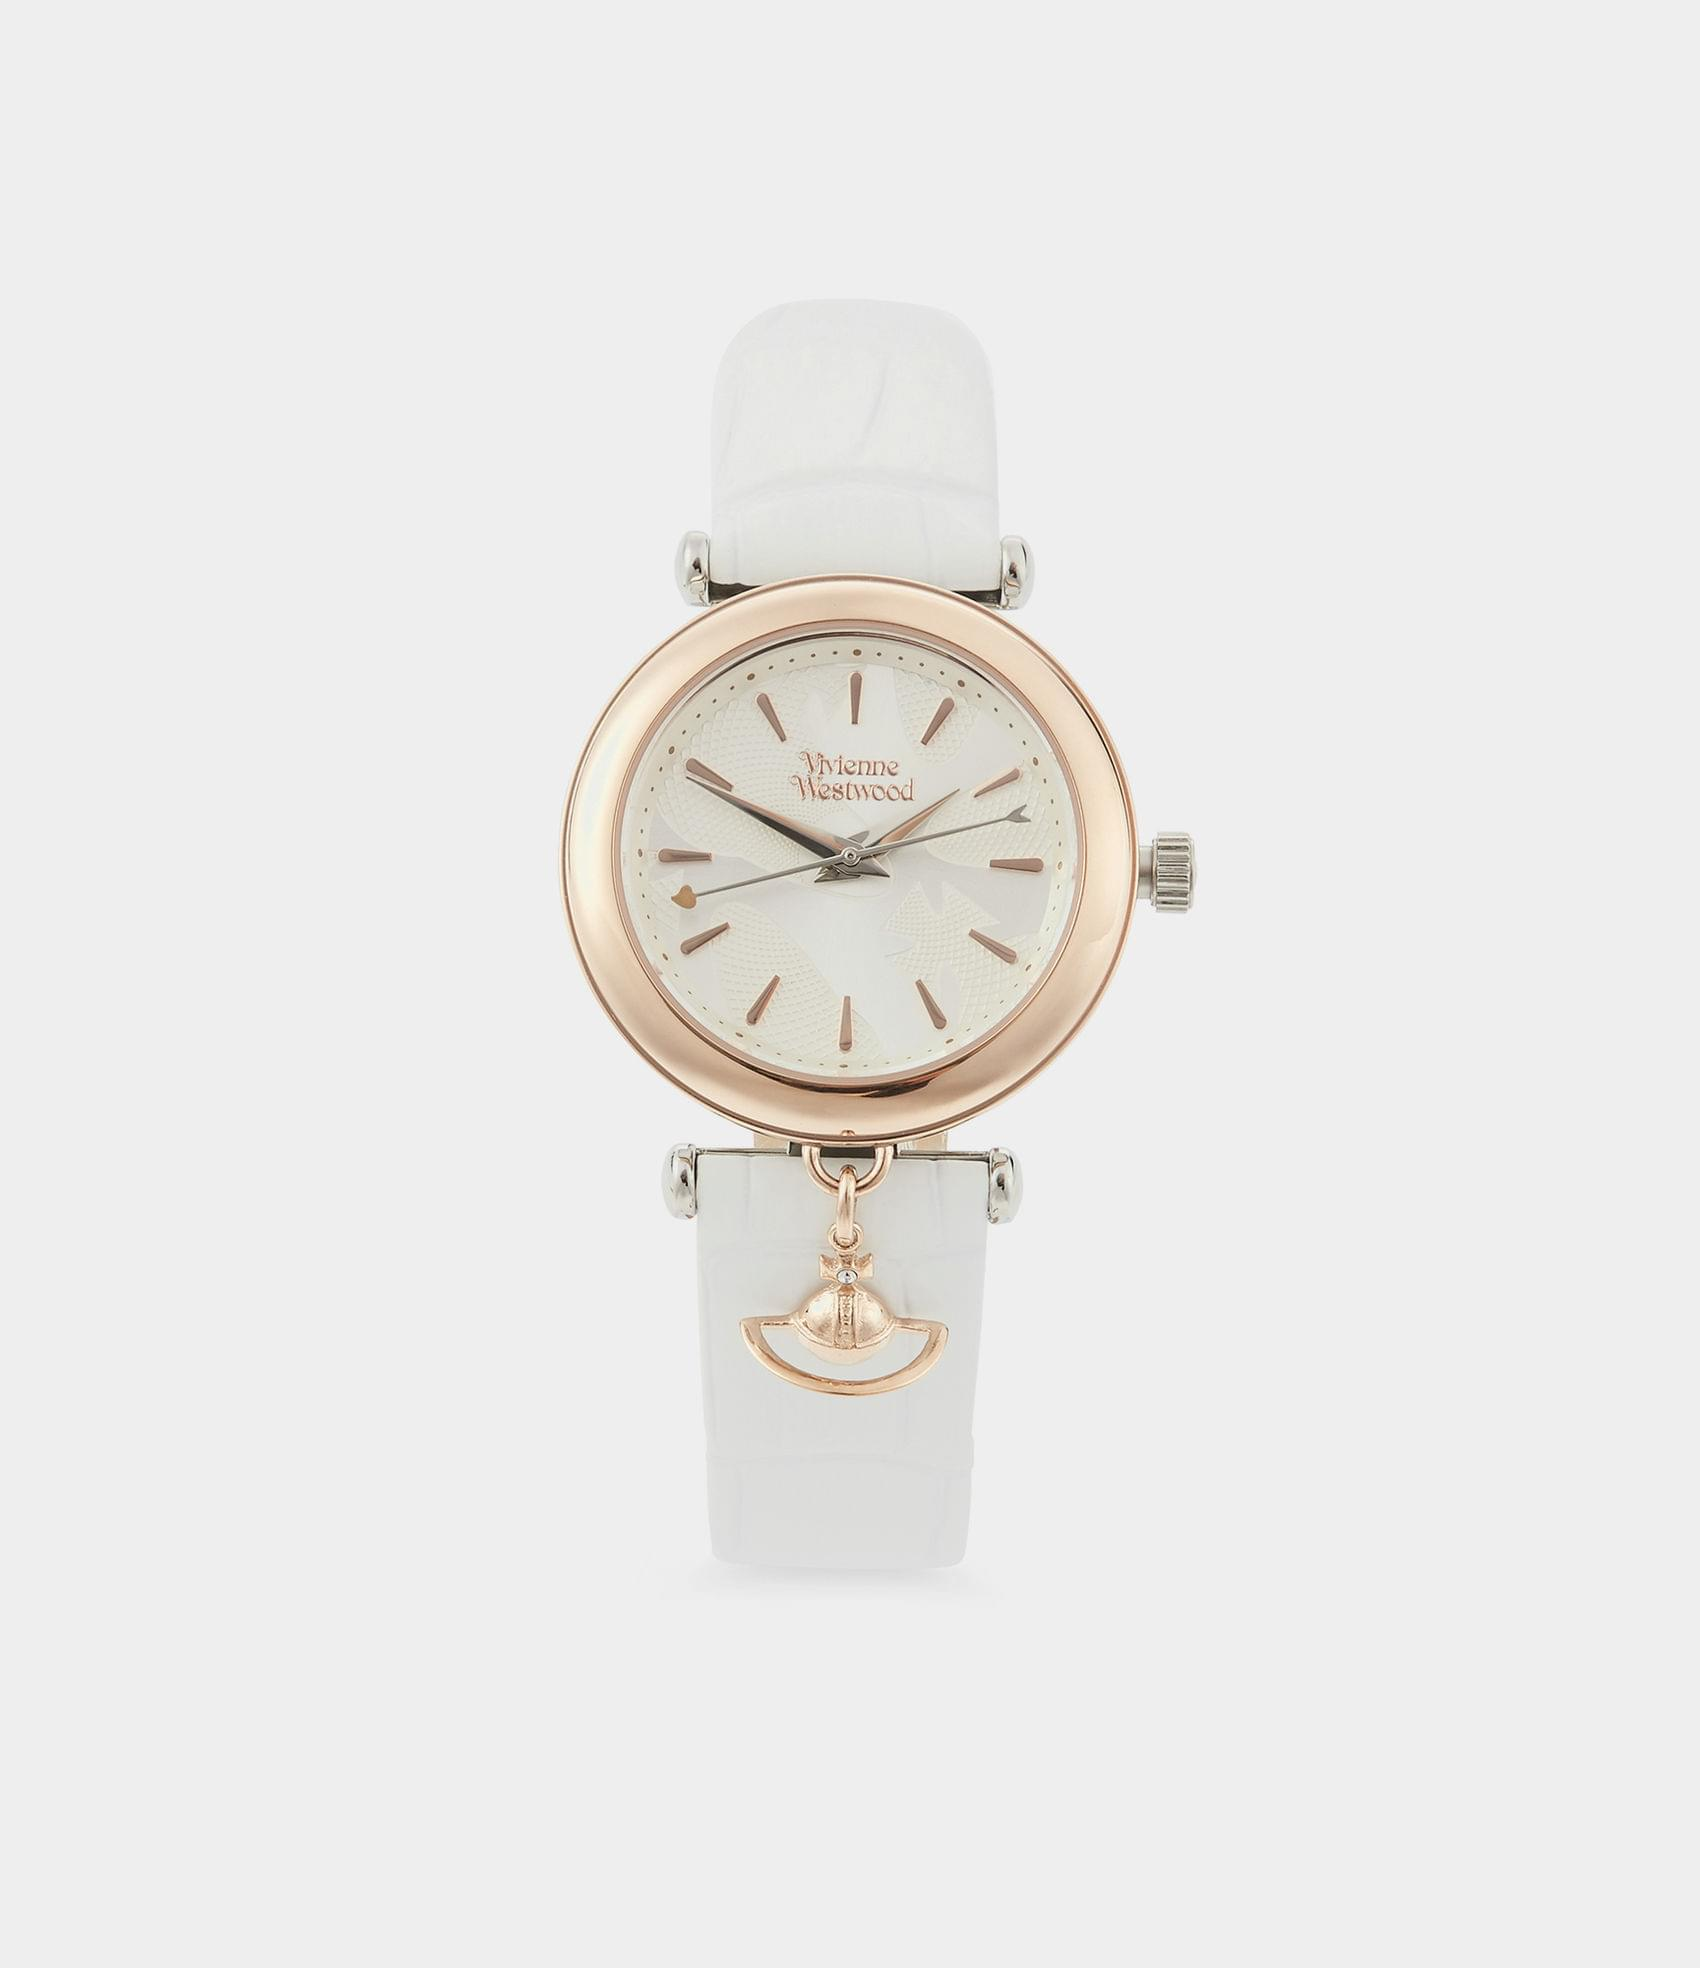 Vivienne Westwood TRAFALGAR WATCH ROSE/WHITE